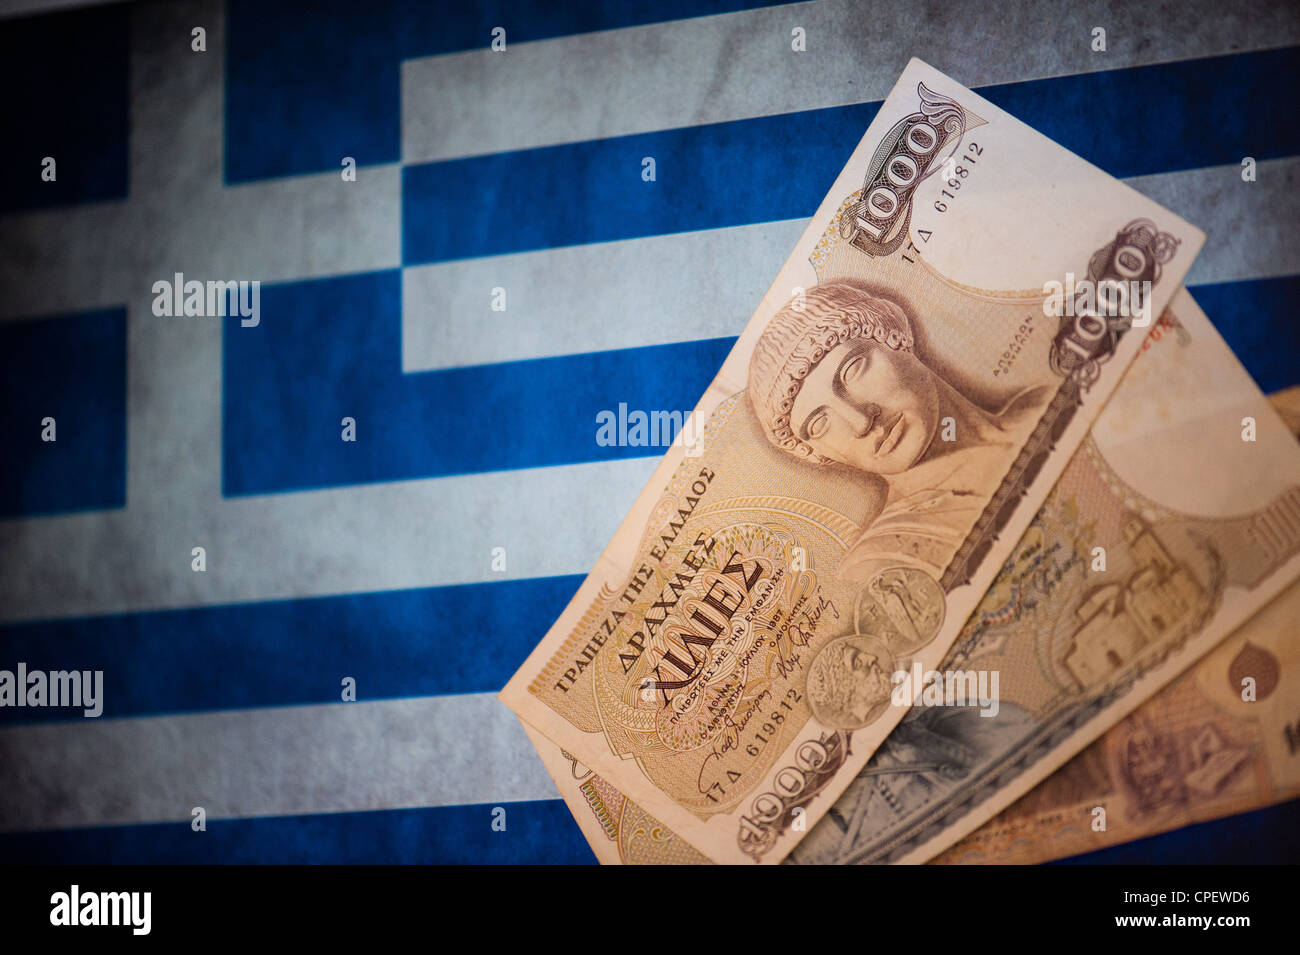 Old Greek drachma notes replaced in 2002 by the euro in front of the Greek flag - Stock Image